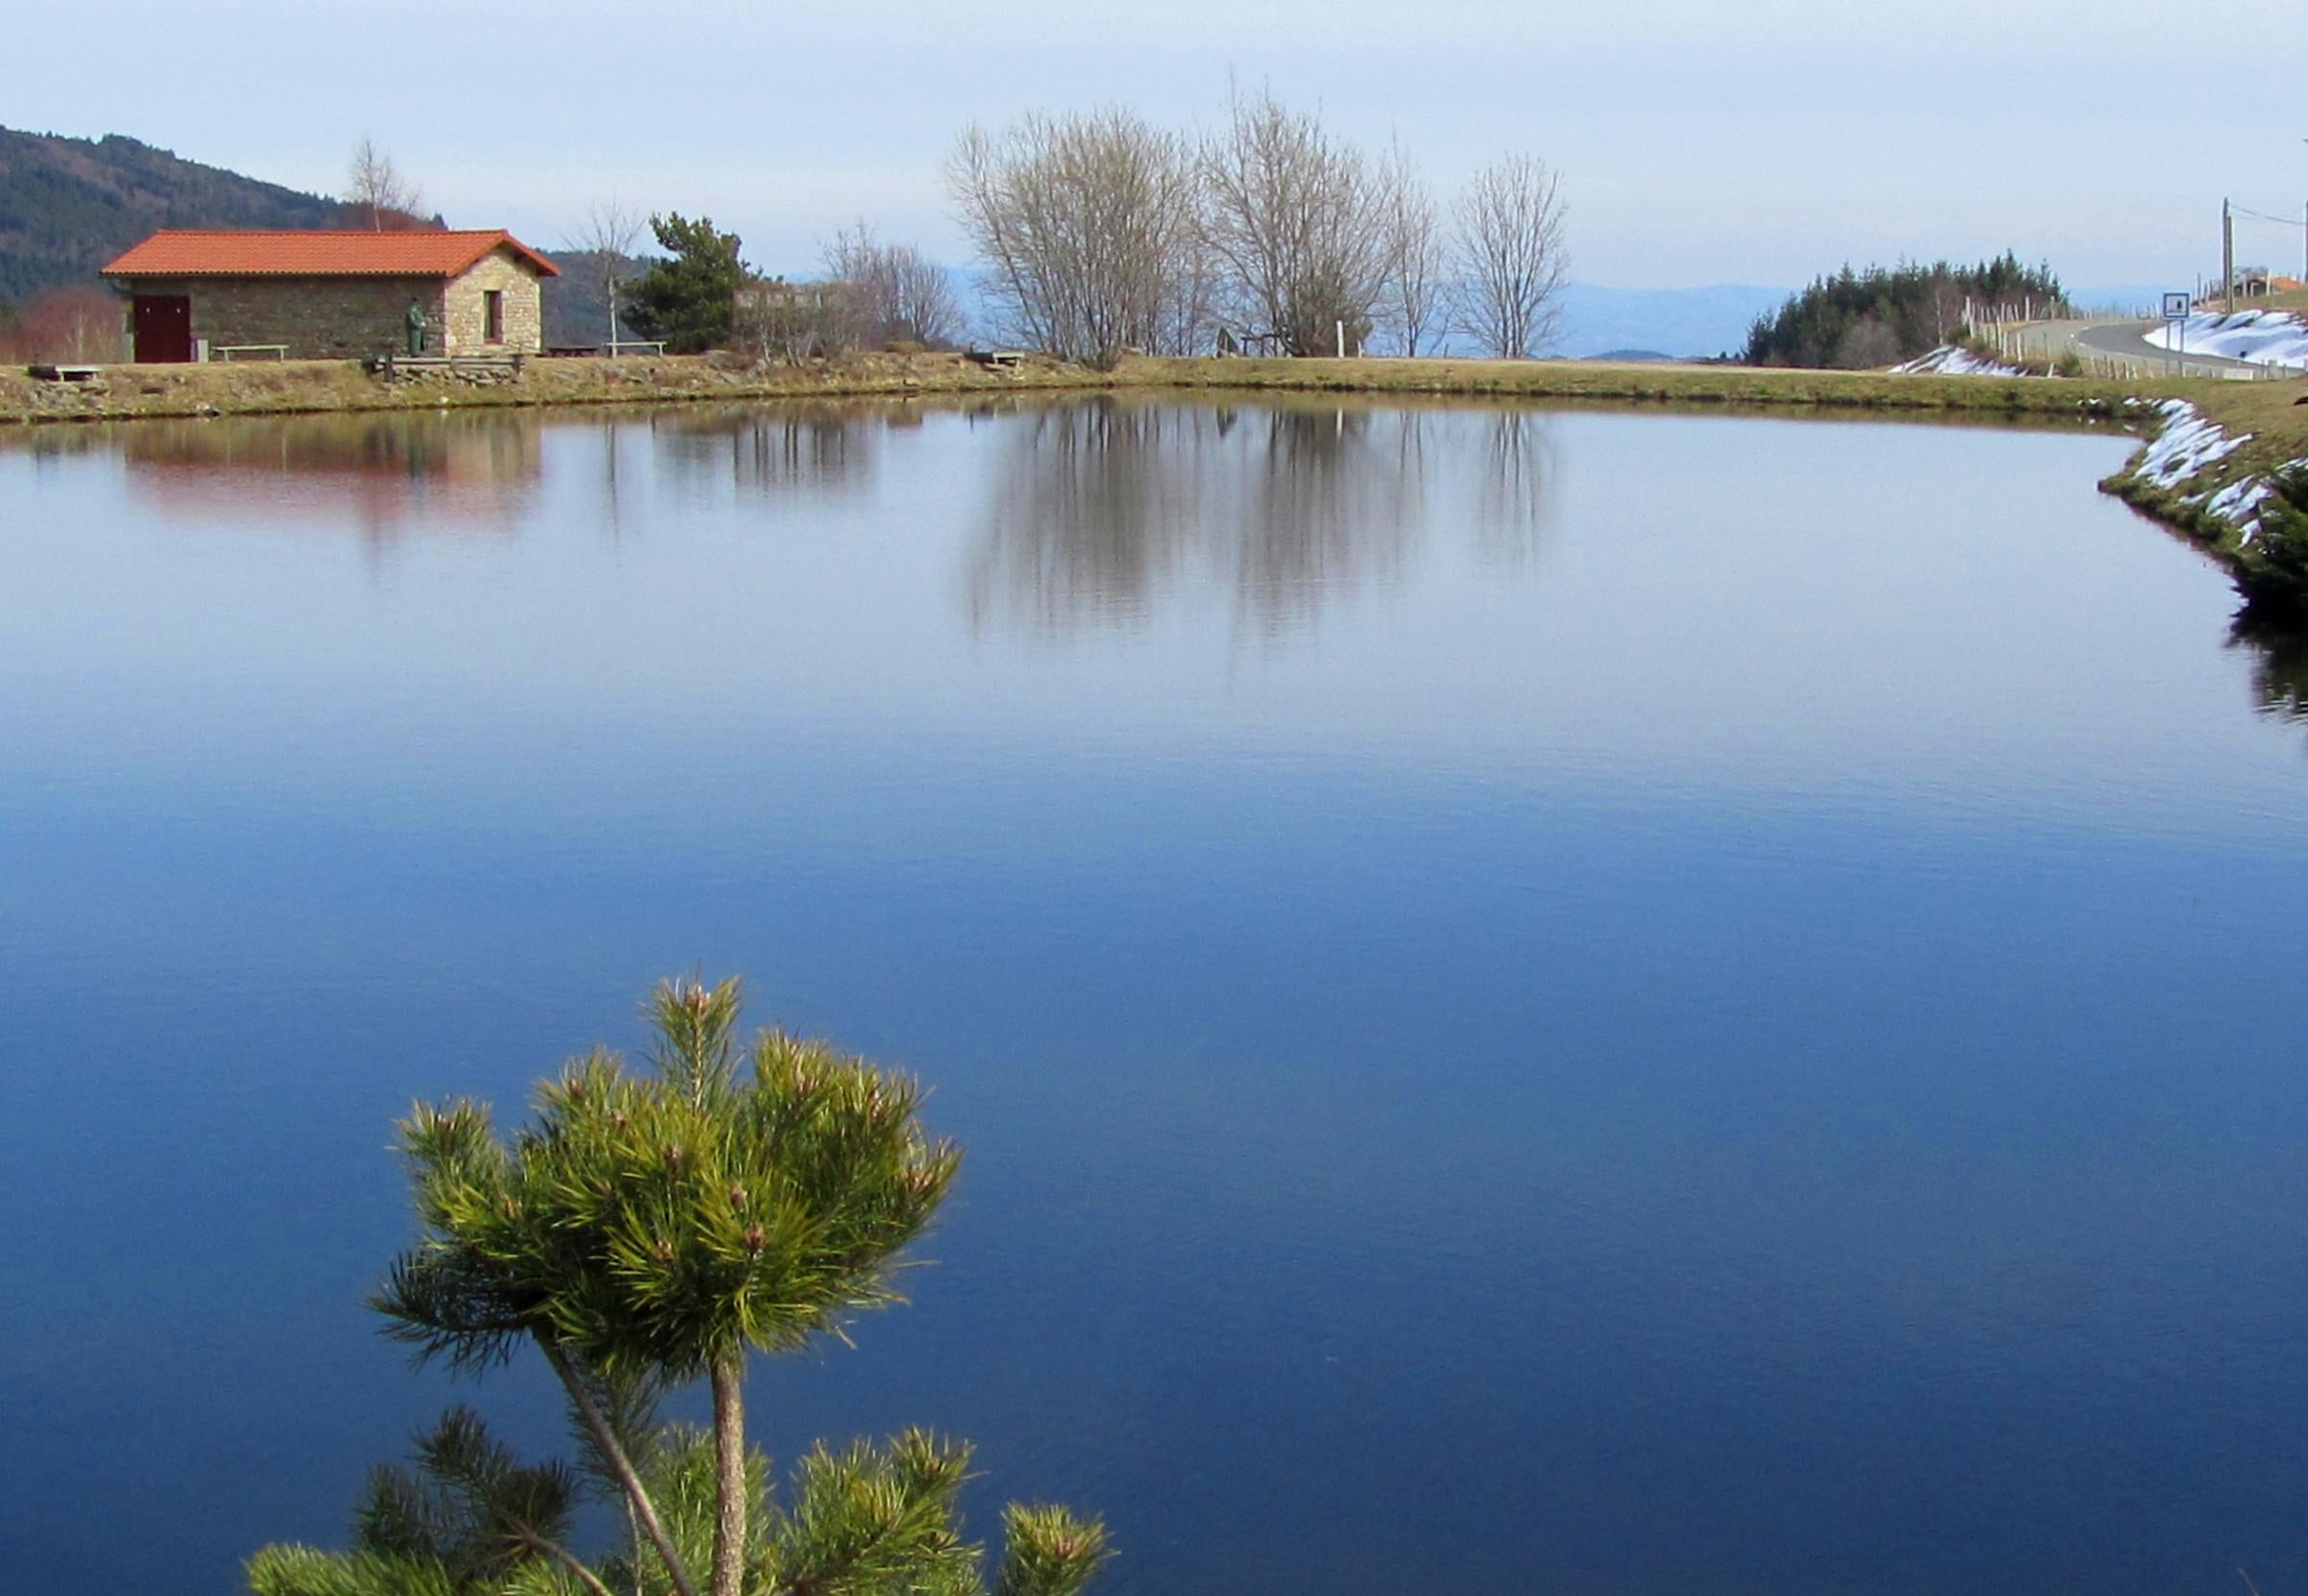 Reflection in Sauvain